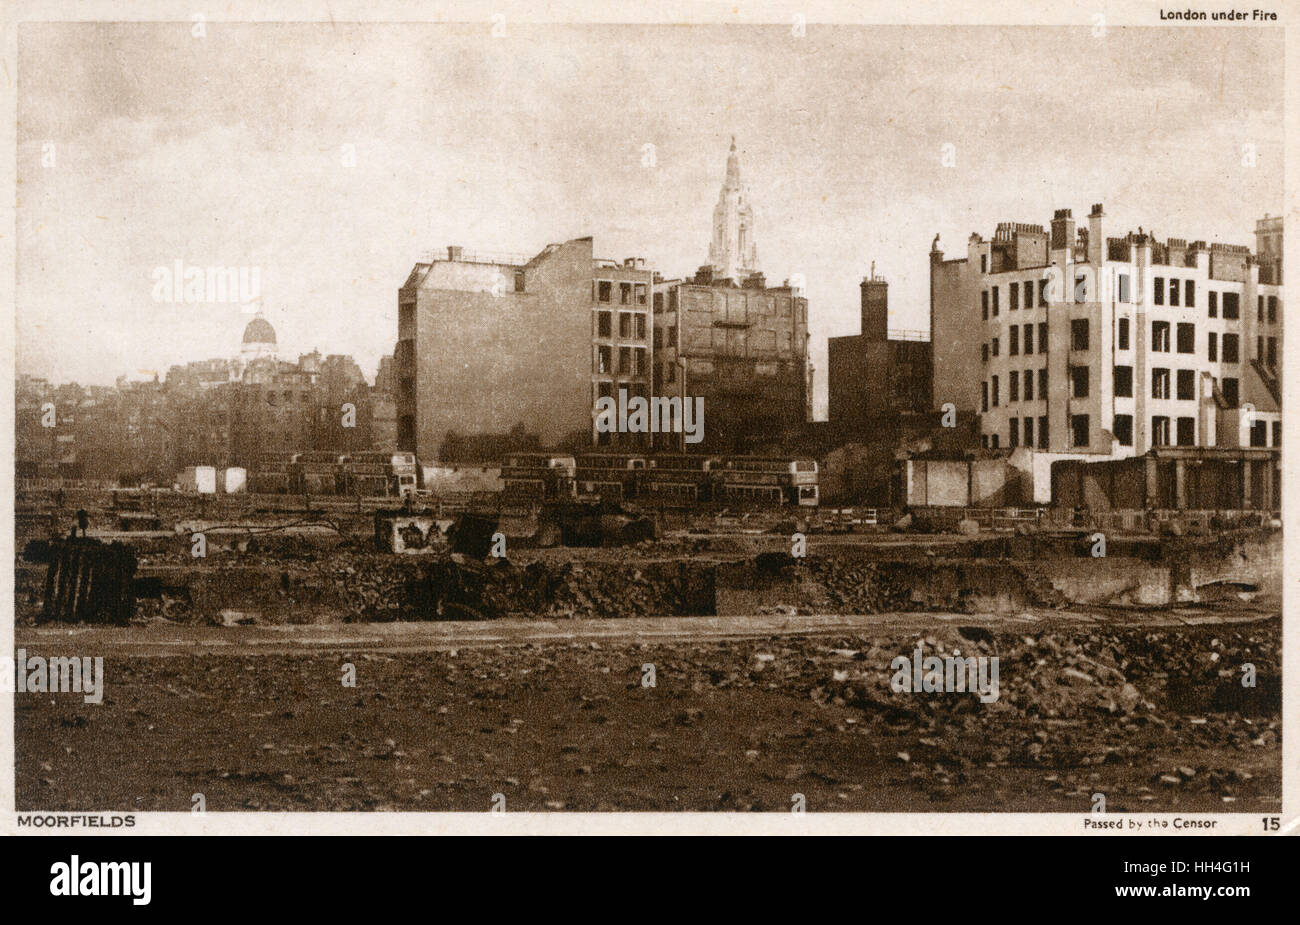 WW2 - London under fire - Moorfields. - Stock Image